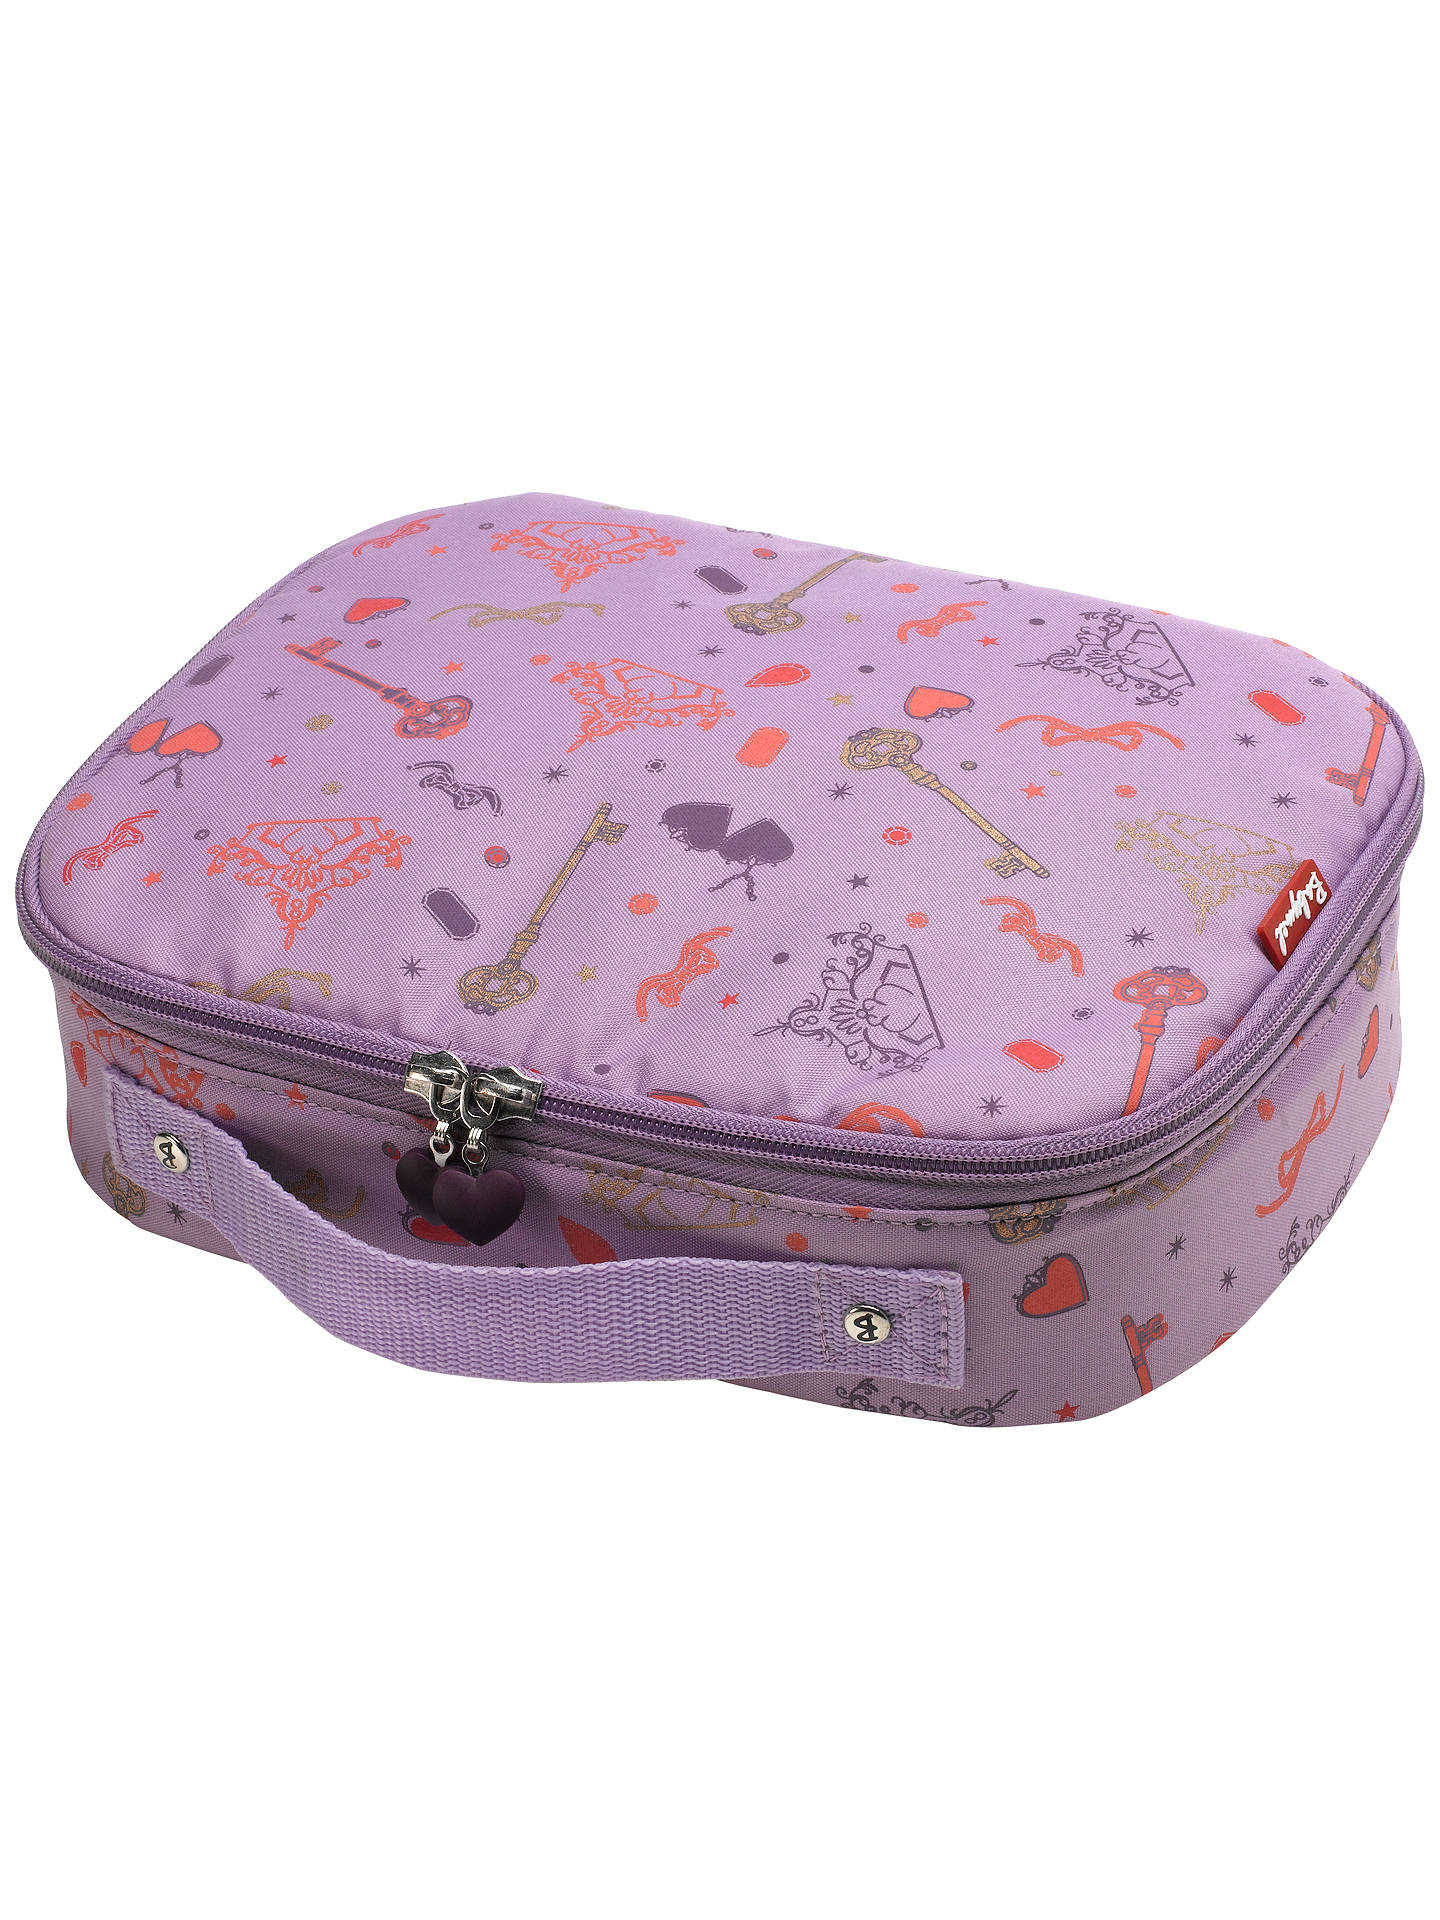 BuyBabymel Princess Food Bag, Purple/Multi Online at johnlewis.com